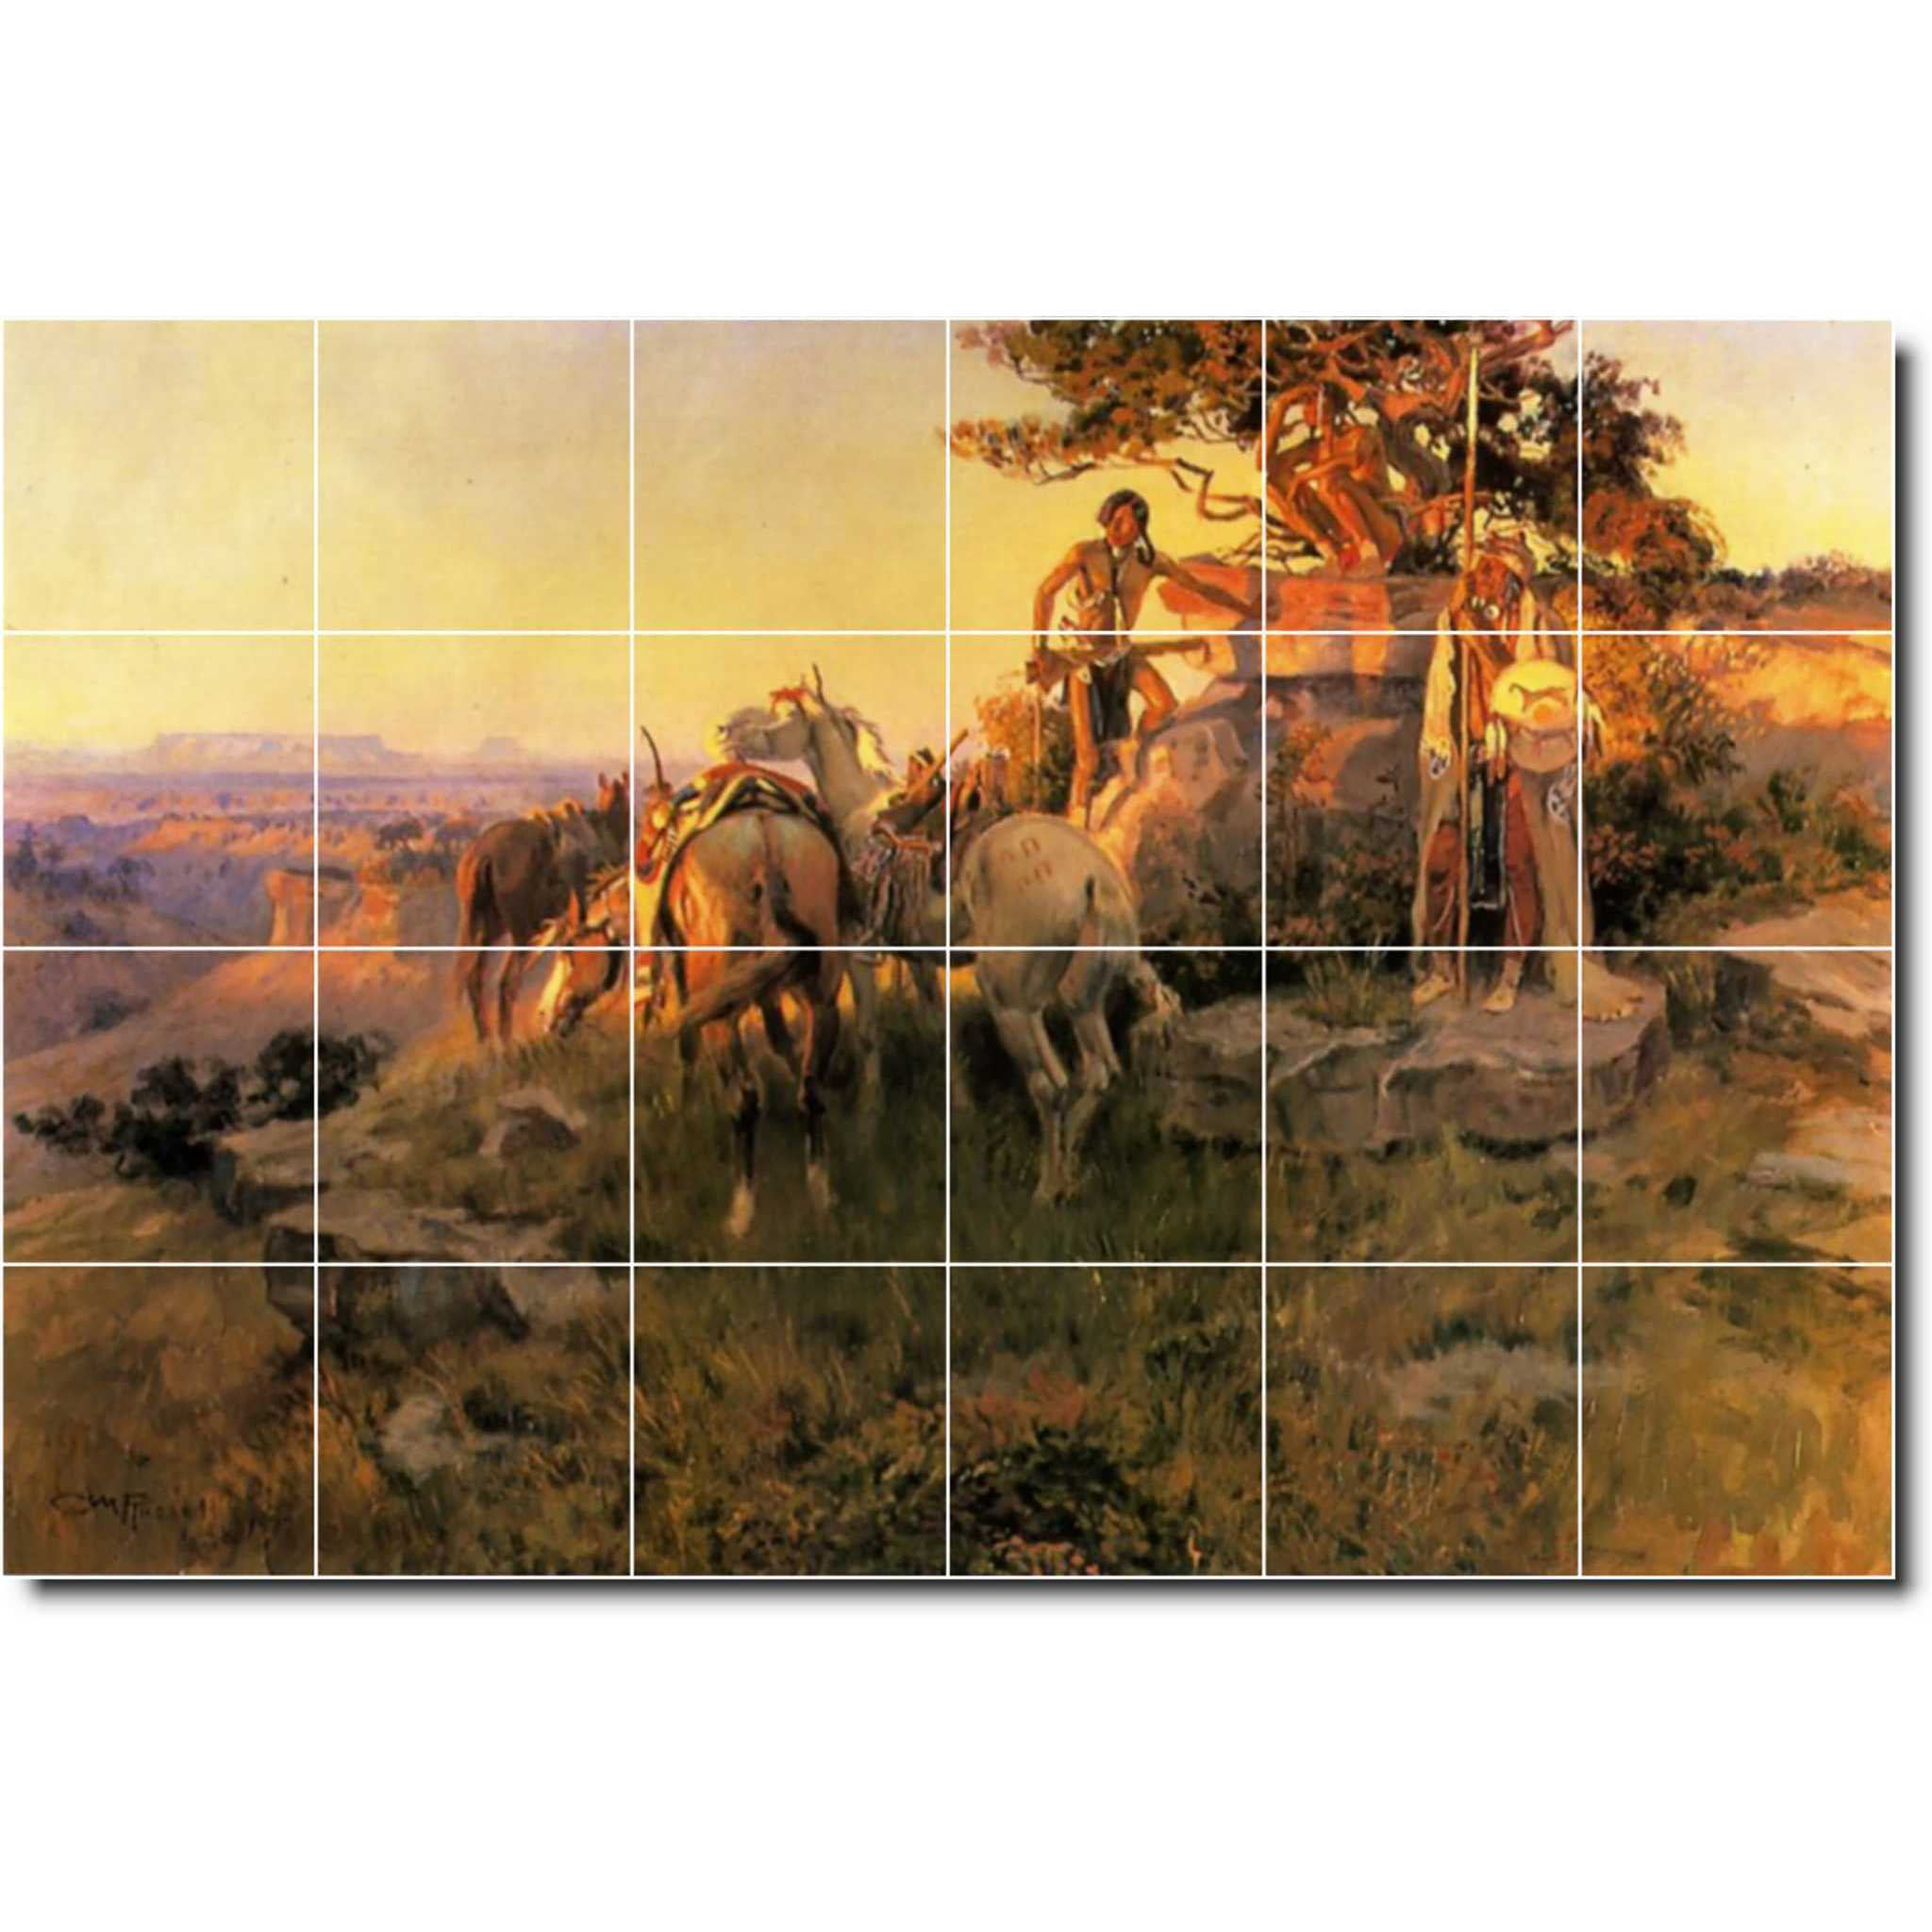 24 Ceramic Tile Mural-Charles Russell Western Backsplash Tile Mural 4 4.25 x 4.25 Ceramic Tiles 25.5 w x 17 h Using